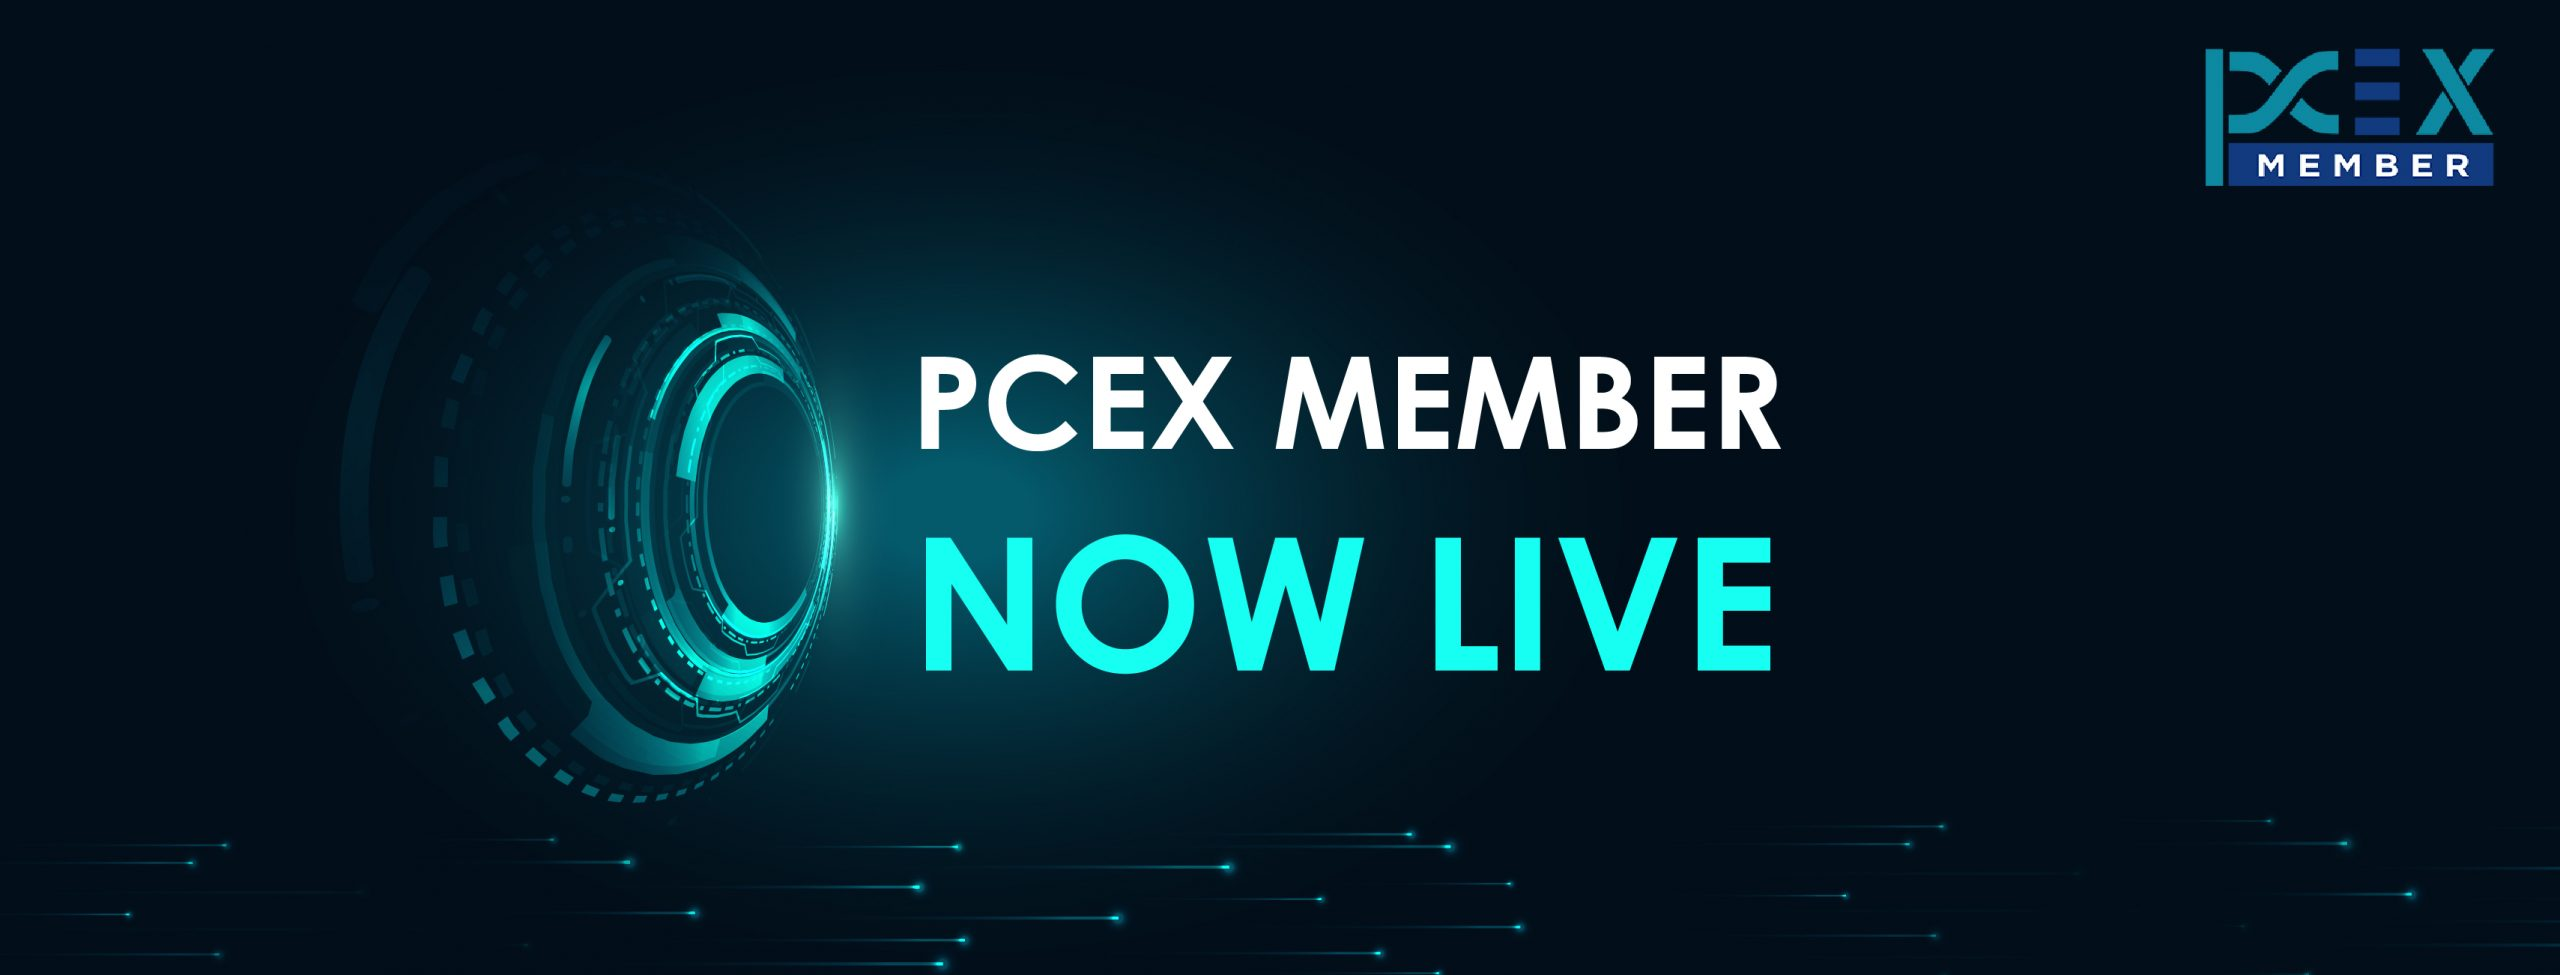 PCEX Member- Crypto Trading Platform Launched in India!